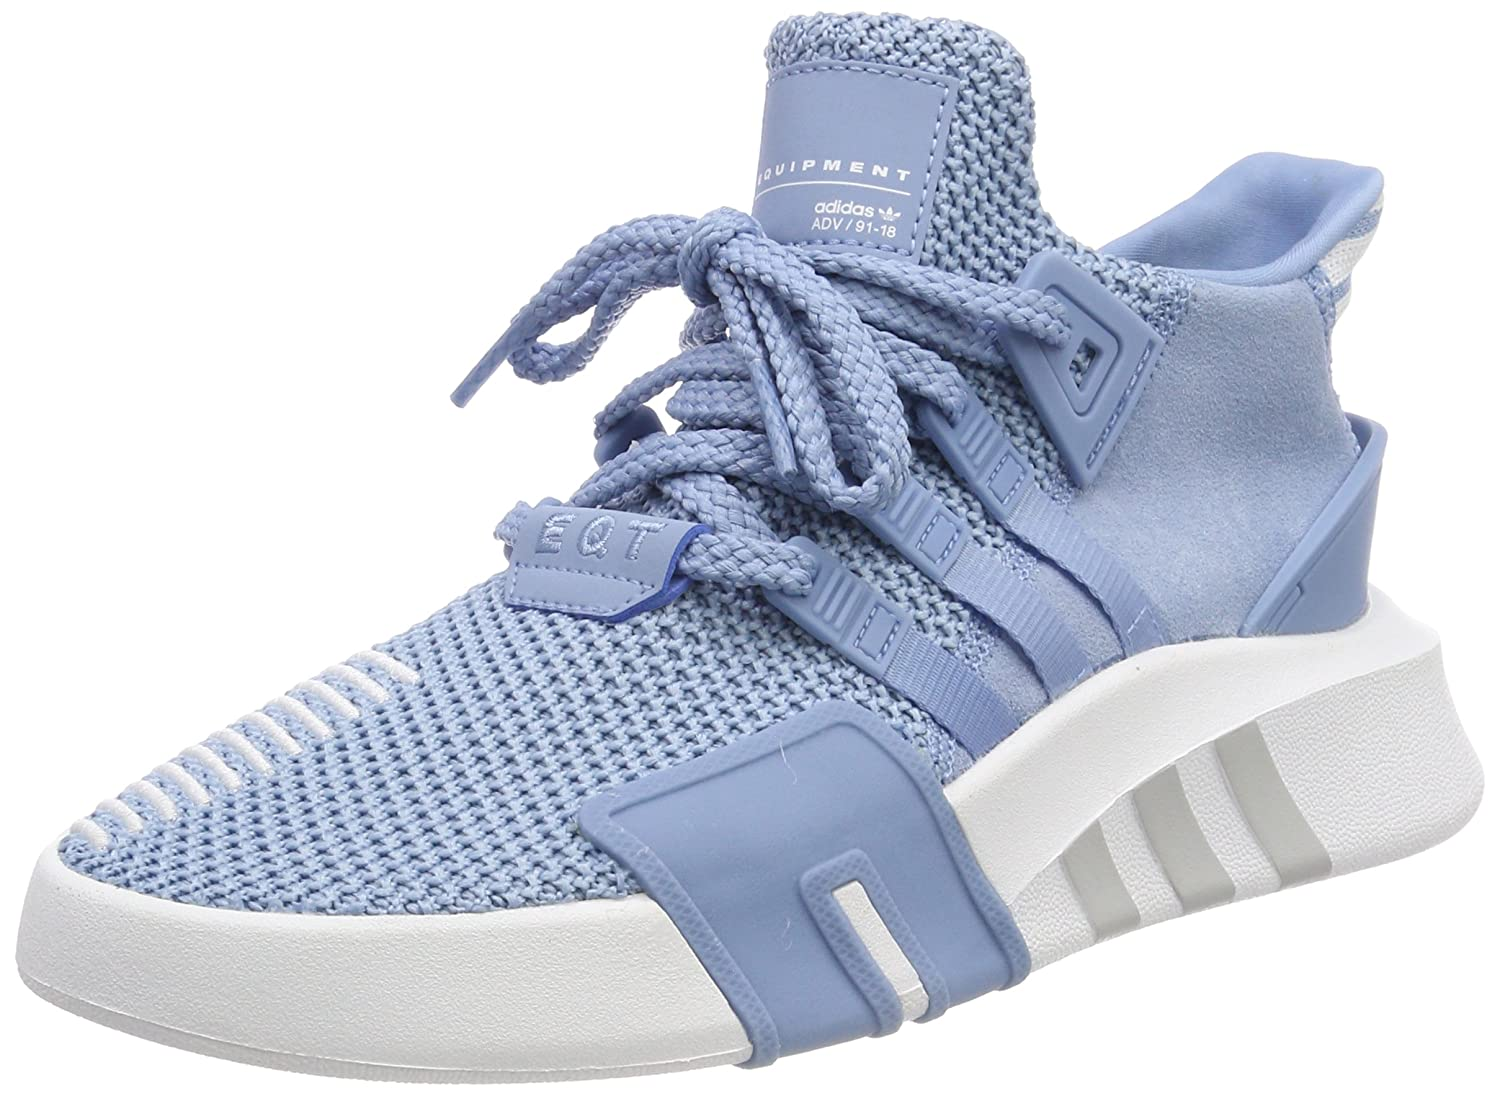 f095e3676541 adidas Originals Women s EQT Bask Adv W Ashblu Ftwwht Sneakers-7 UK India  (40.67 EU) (AC7353)  Buy Online at Low Prices in India - Amazon.in